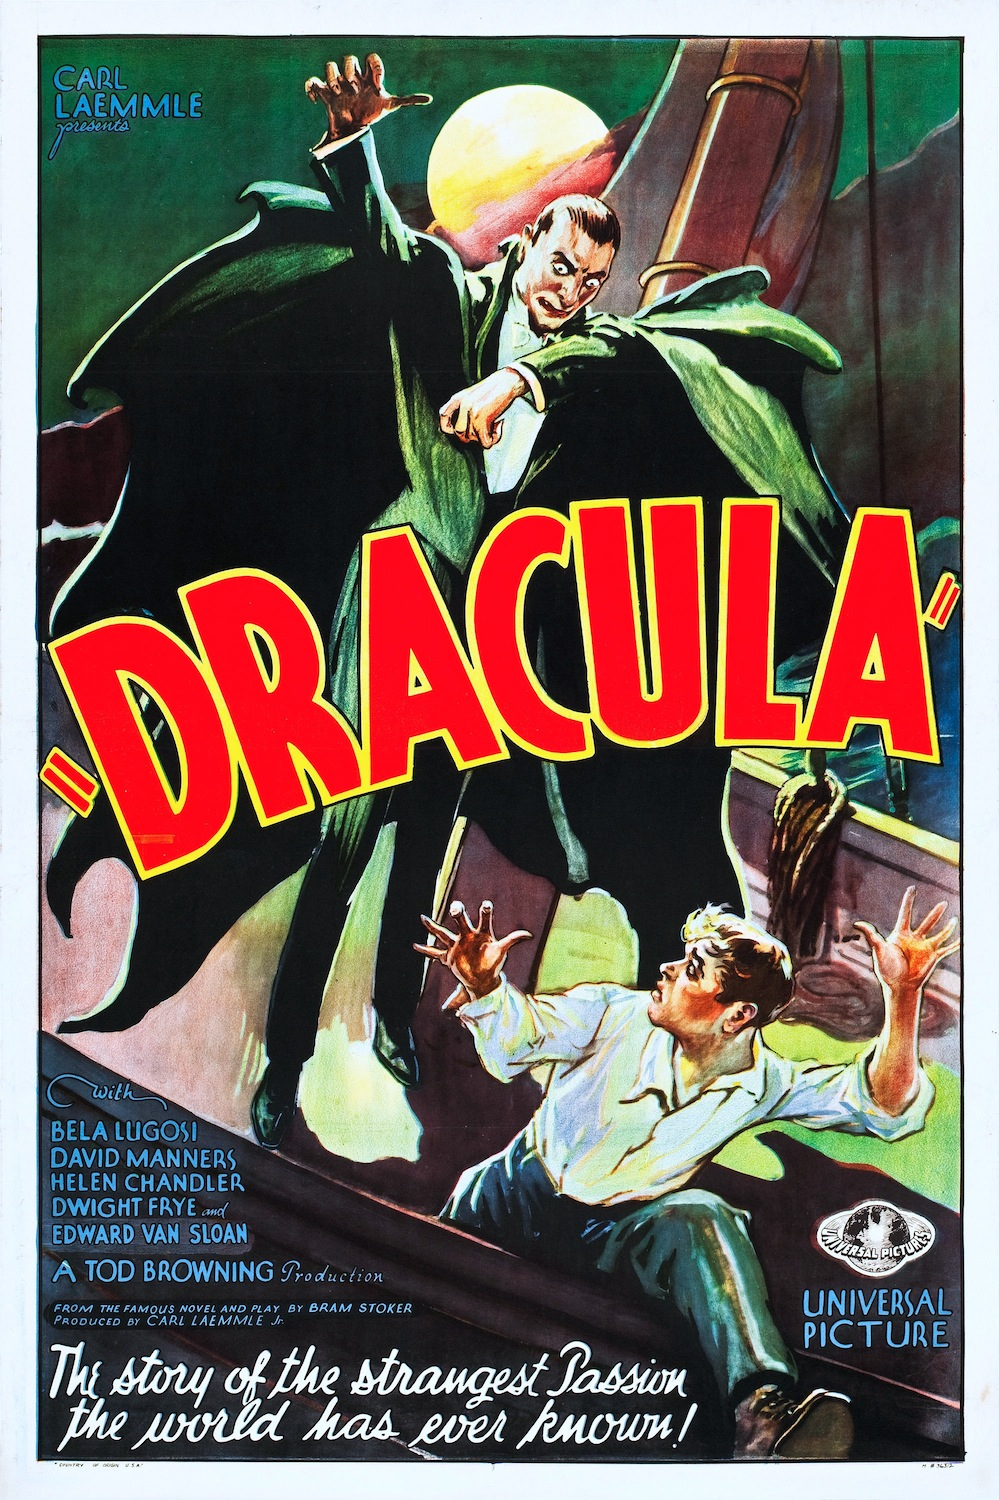 dracula 1931 english language film wikipedia